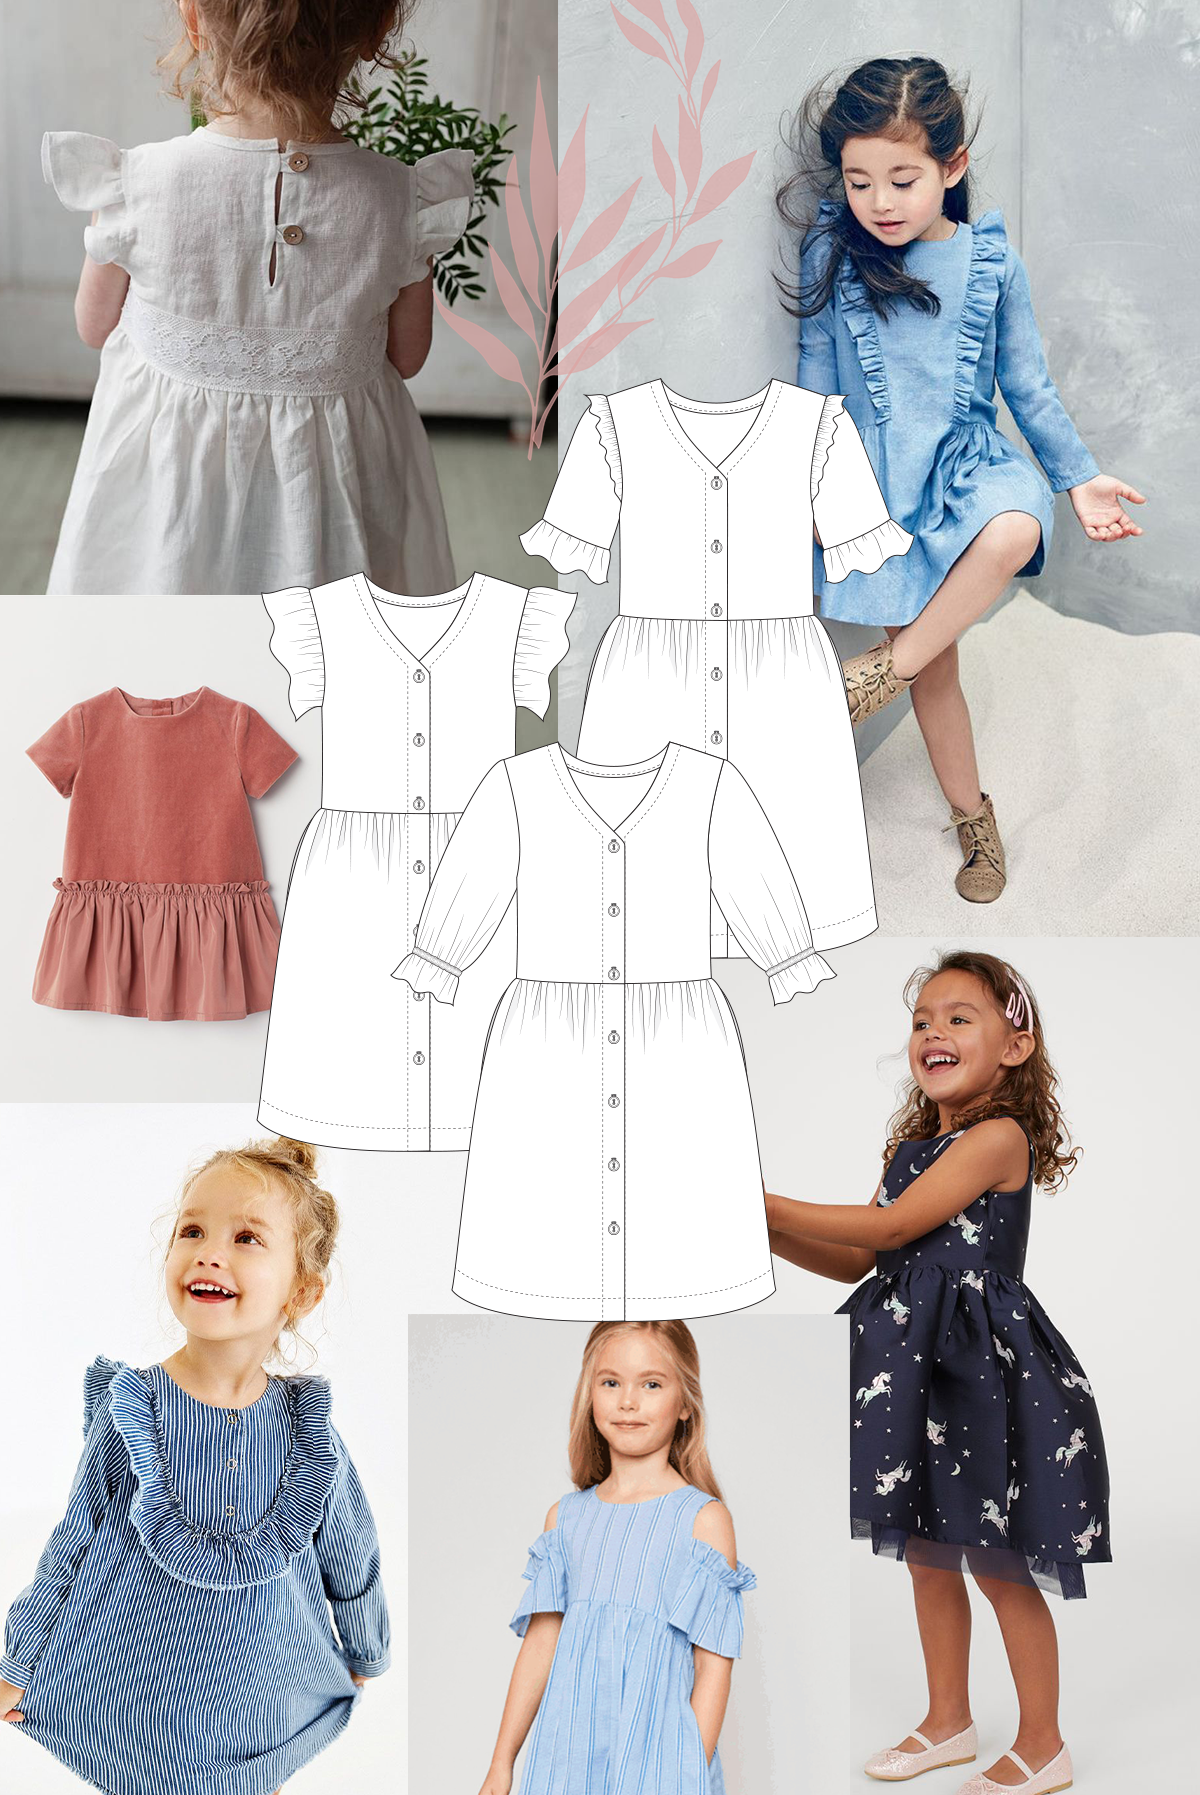 Any ruffles or frills can make the Mini Darling Ranges super sweet